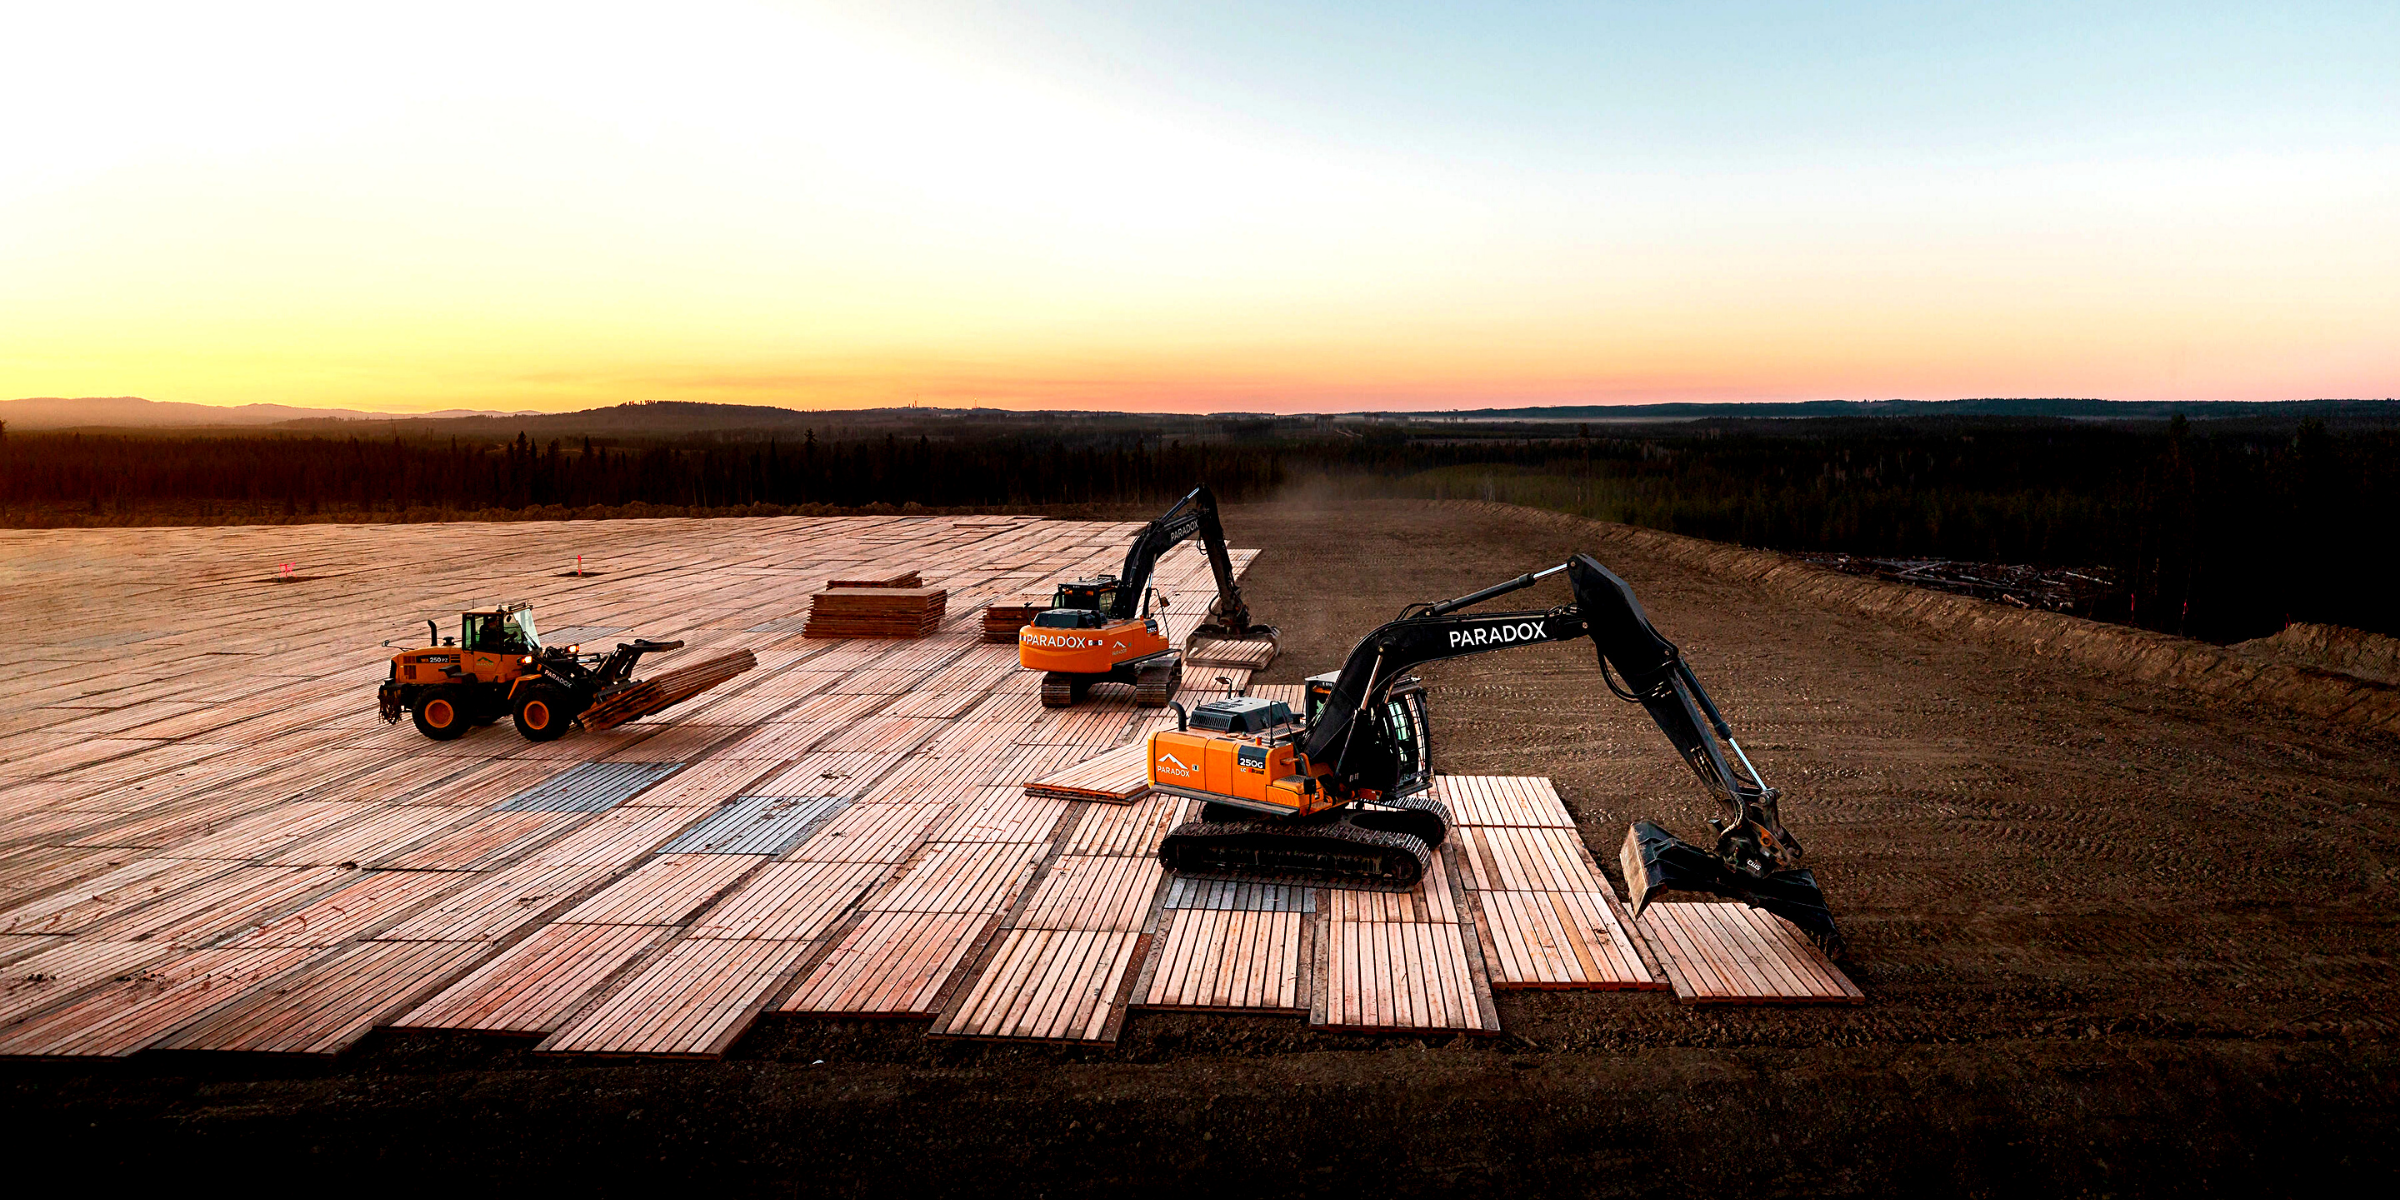 Access mats, including rig mats and swamp mats, are an environmentally-friendly way for companies in the natural resources sector to get their projects on solid ground.